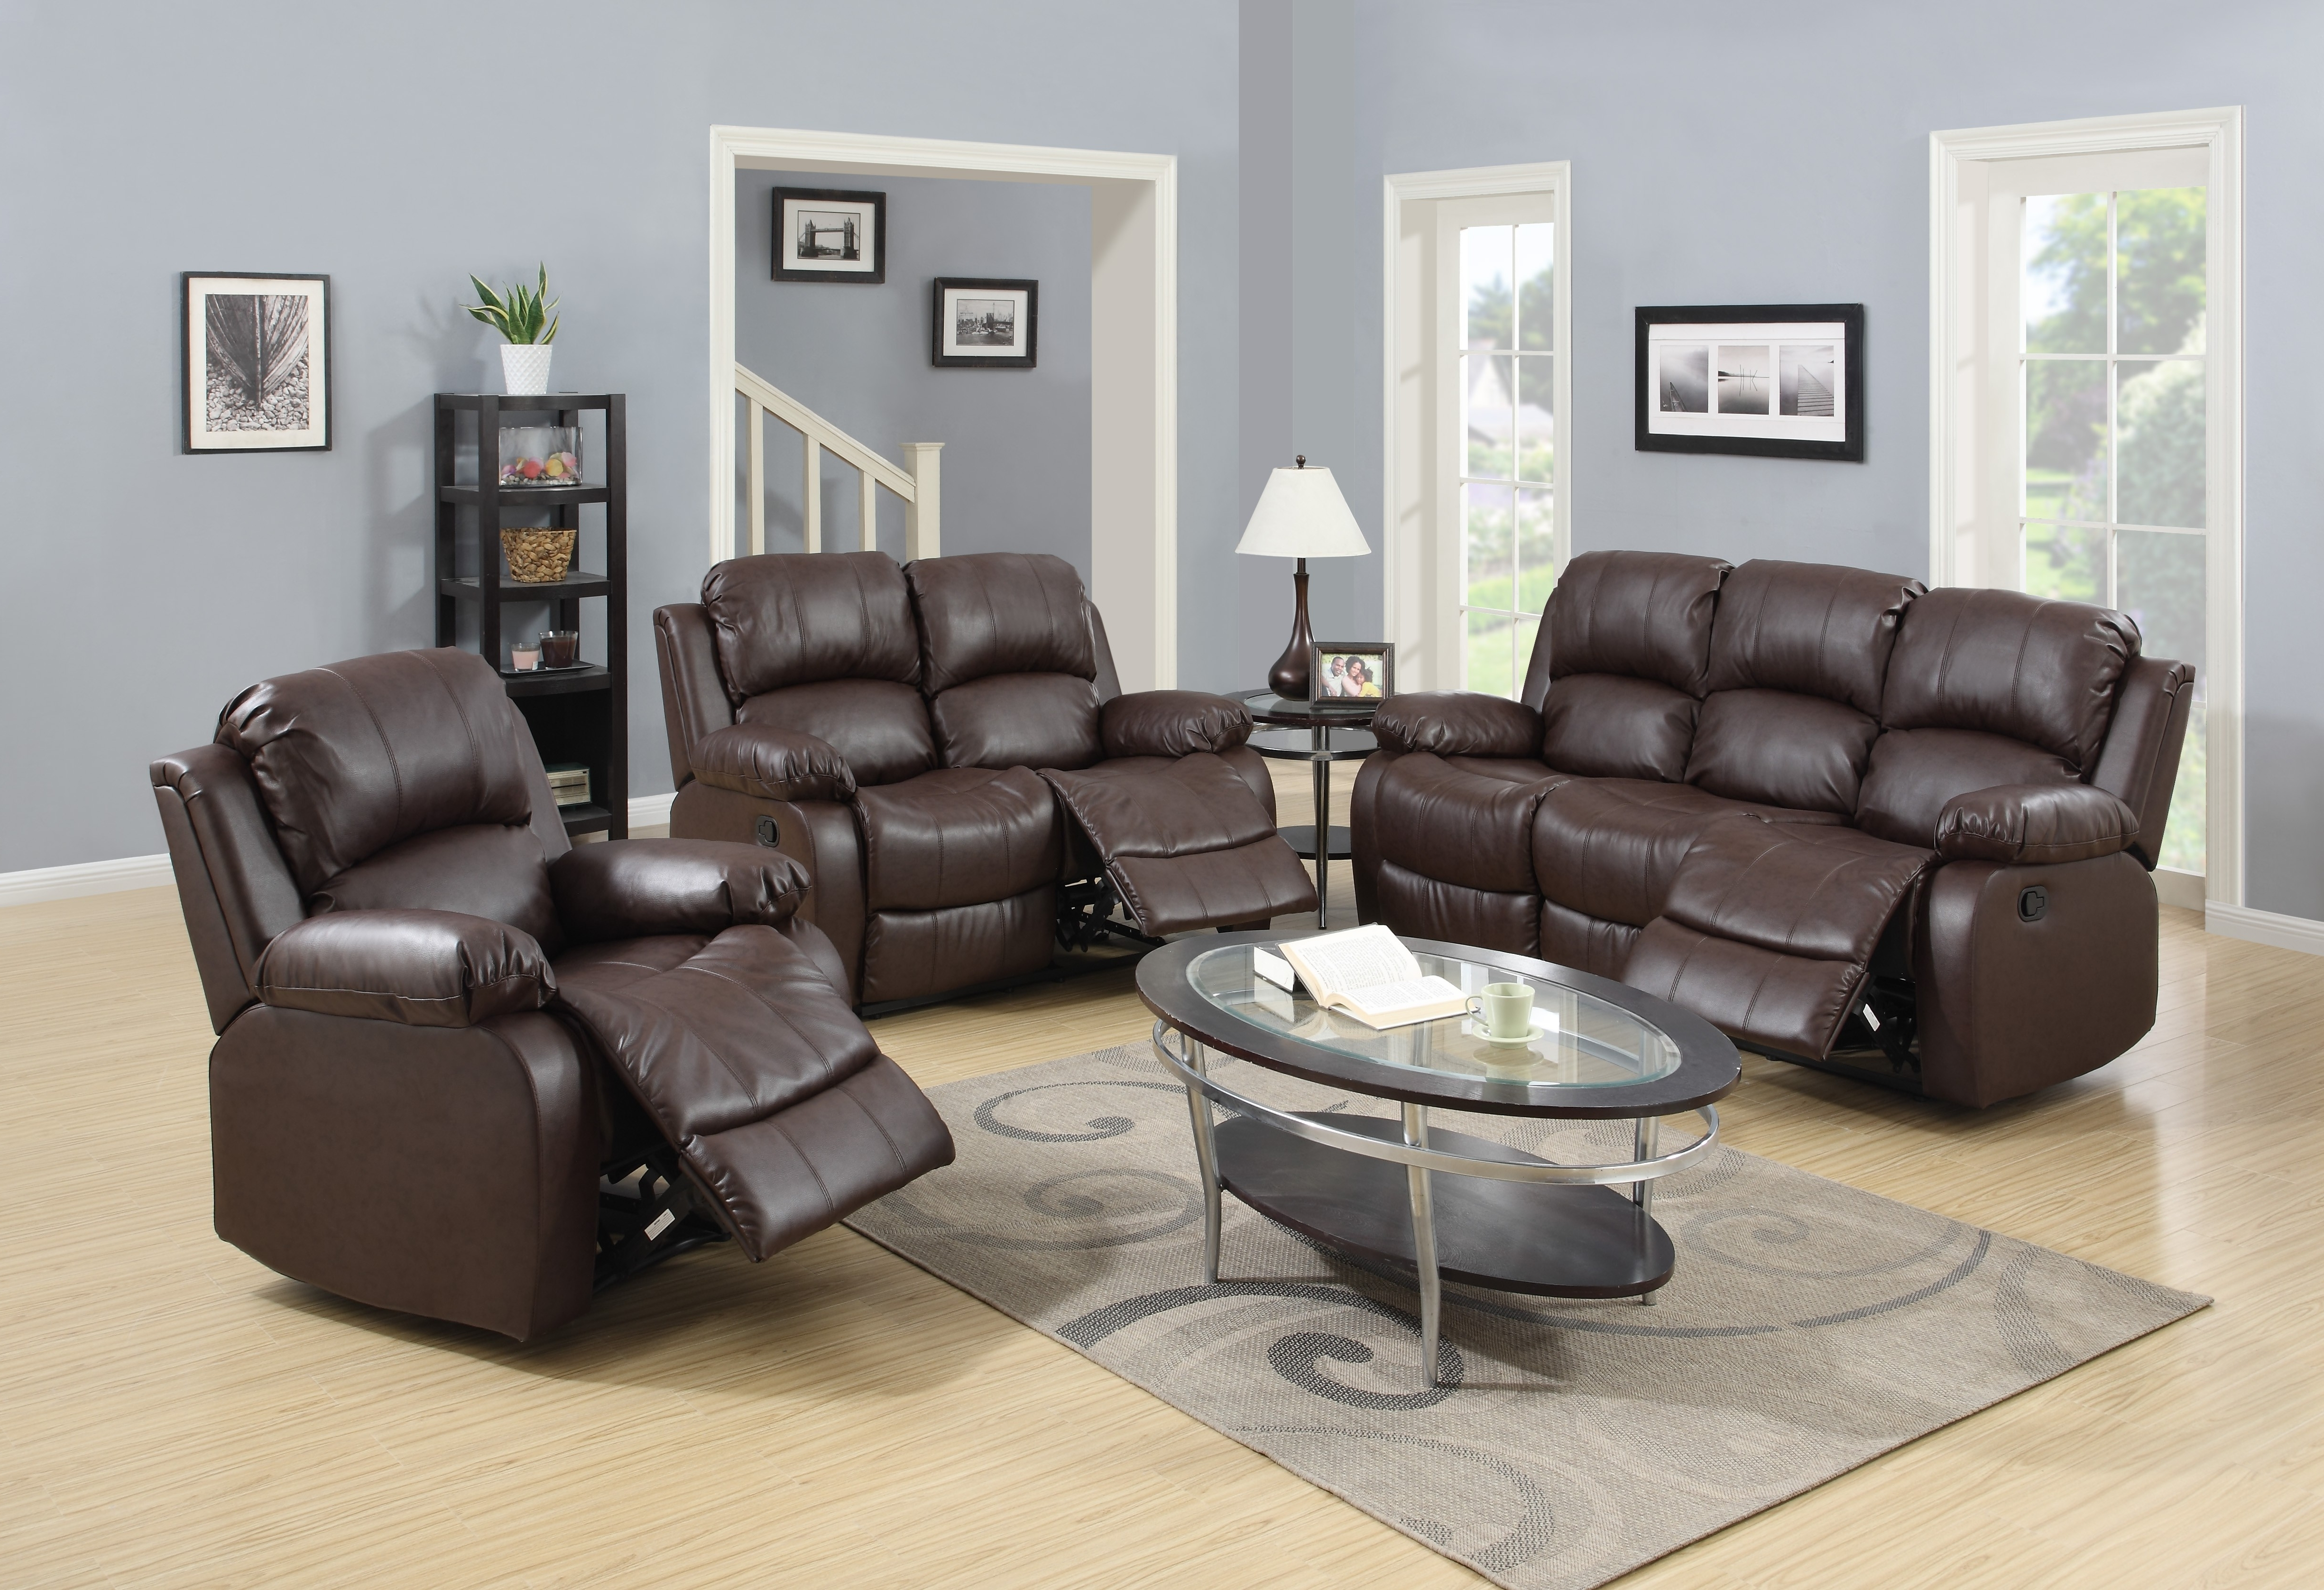 Well Known Sears Sofas Regarding Excellent Decoration Sears Living Room Sets Sweet Design Amazing (View 14 of 15)